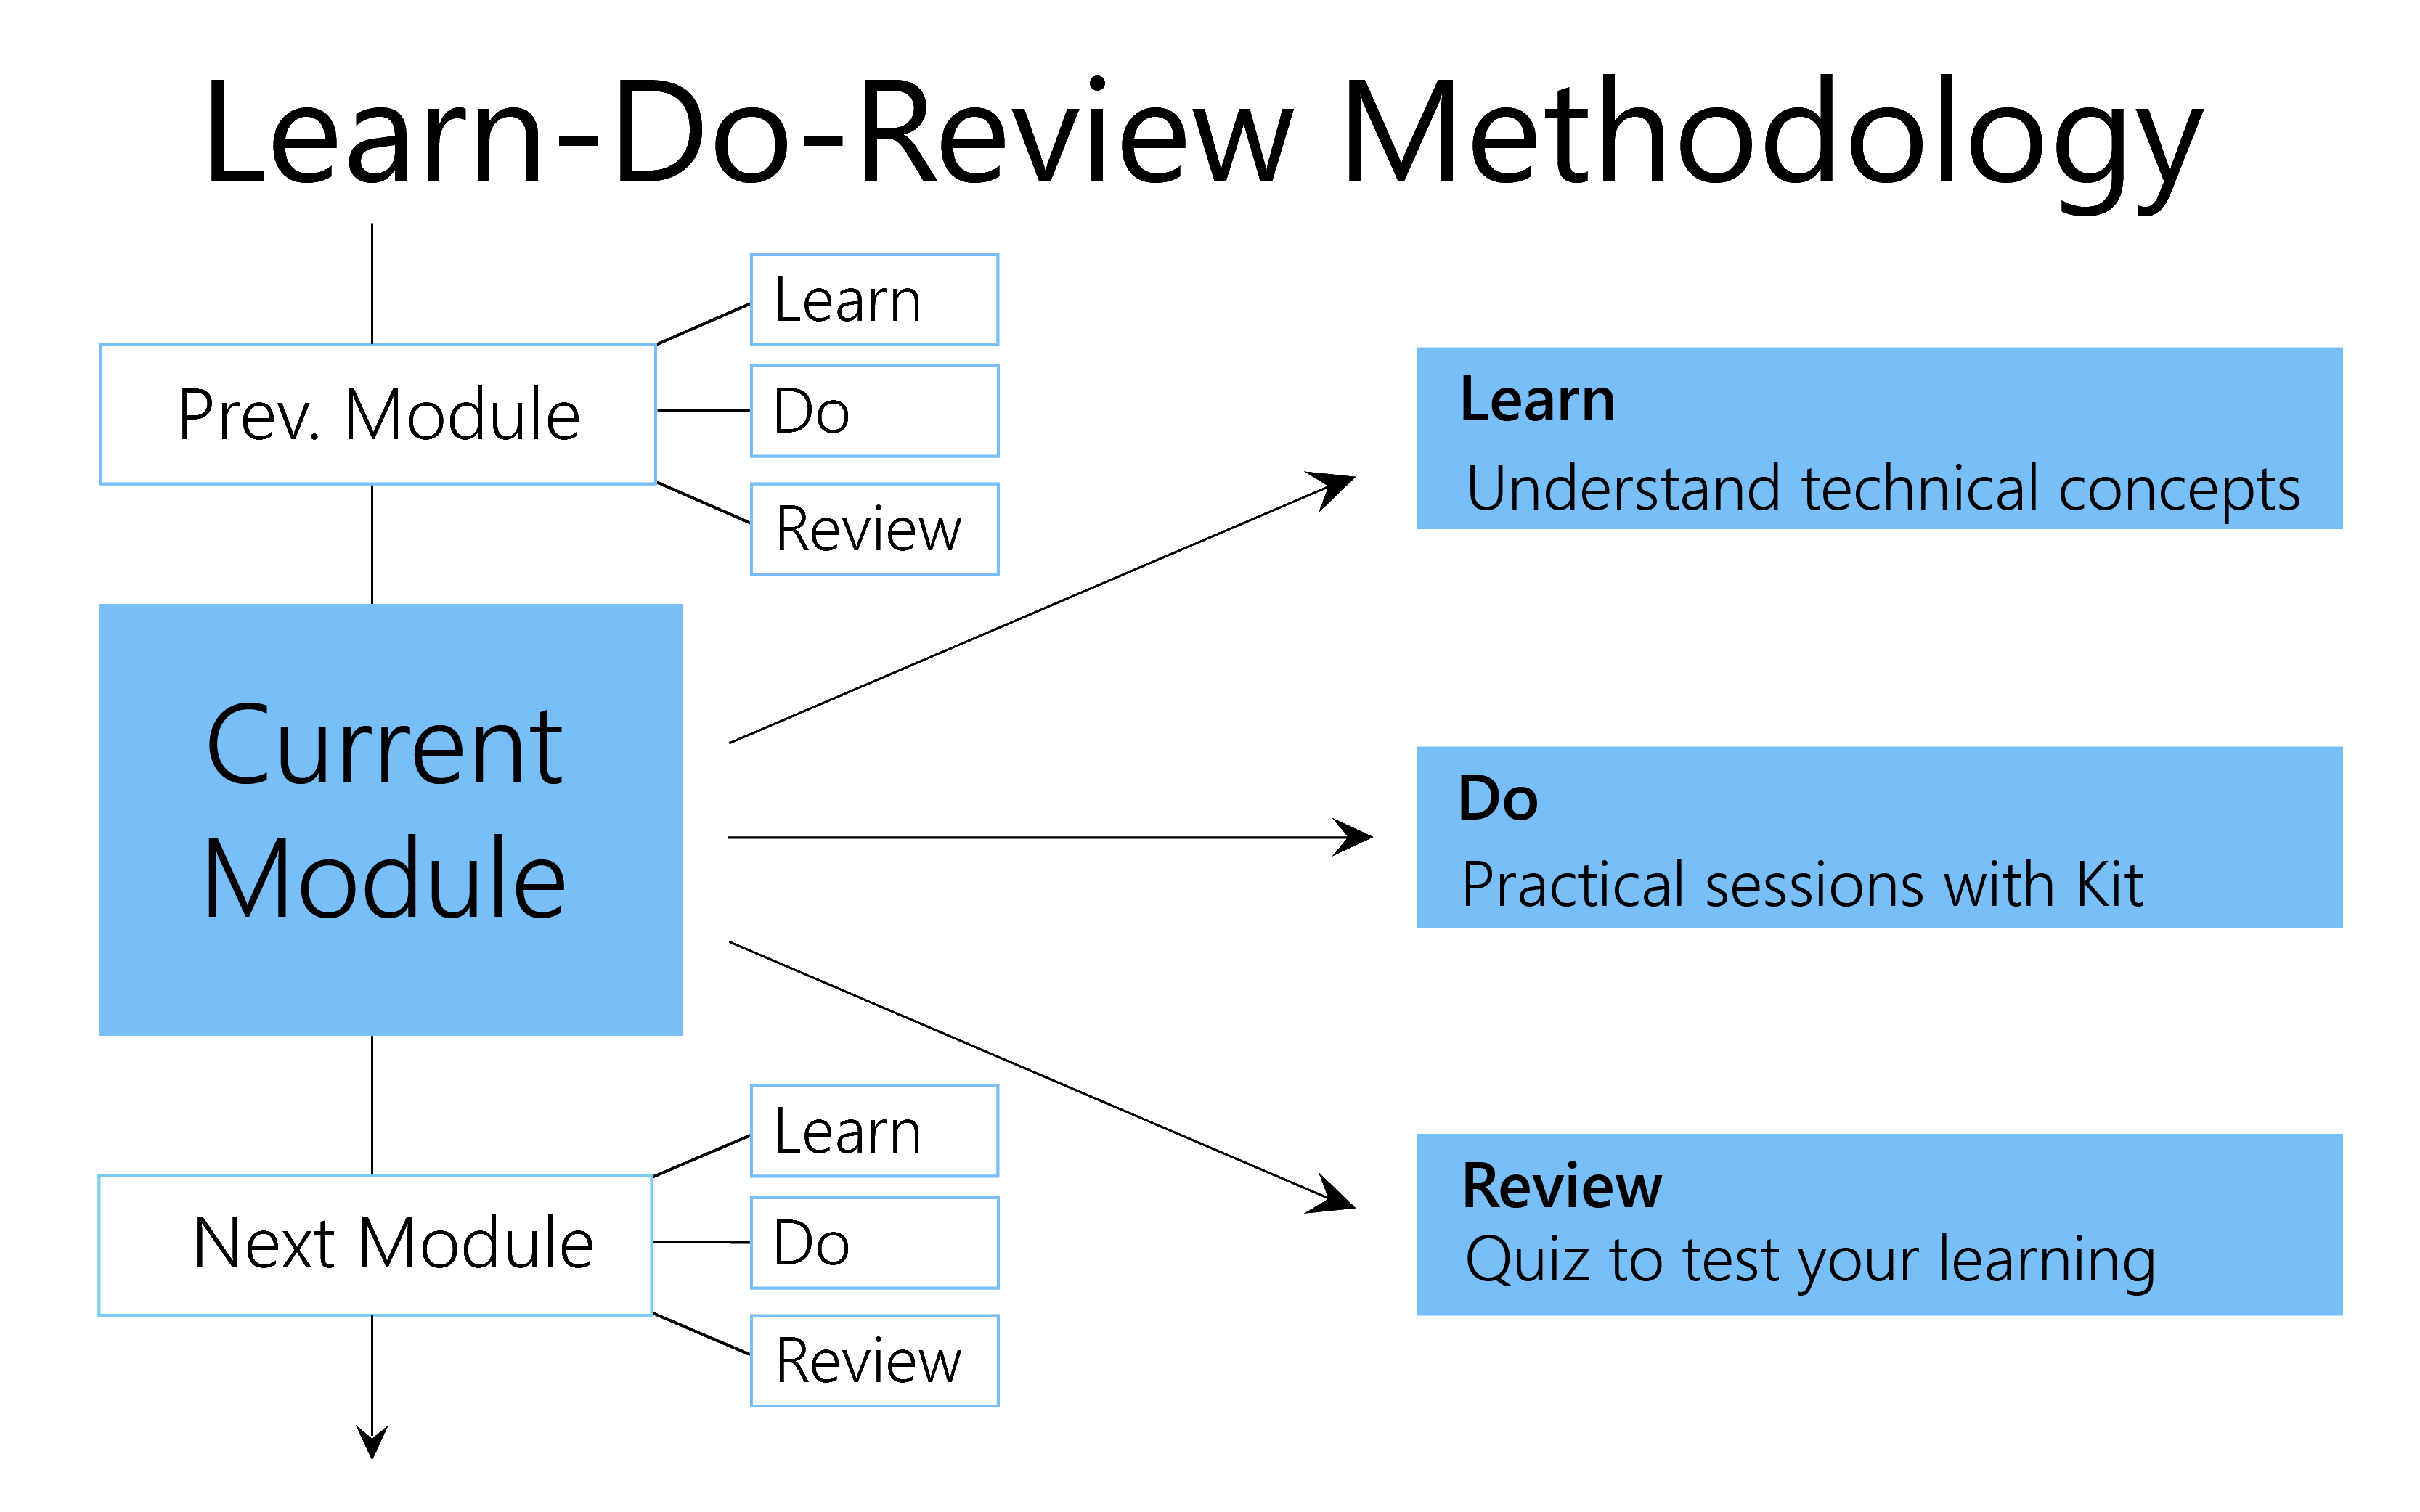 Learn-Do-Review Methodology